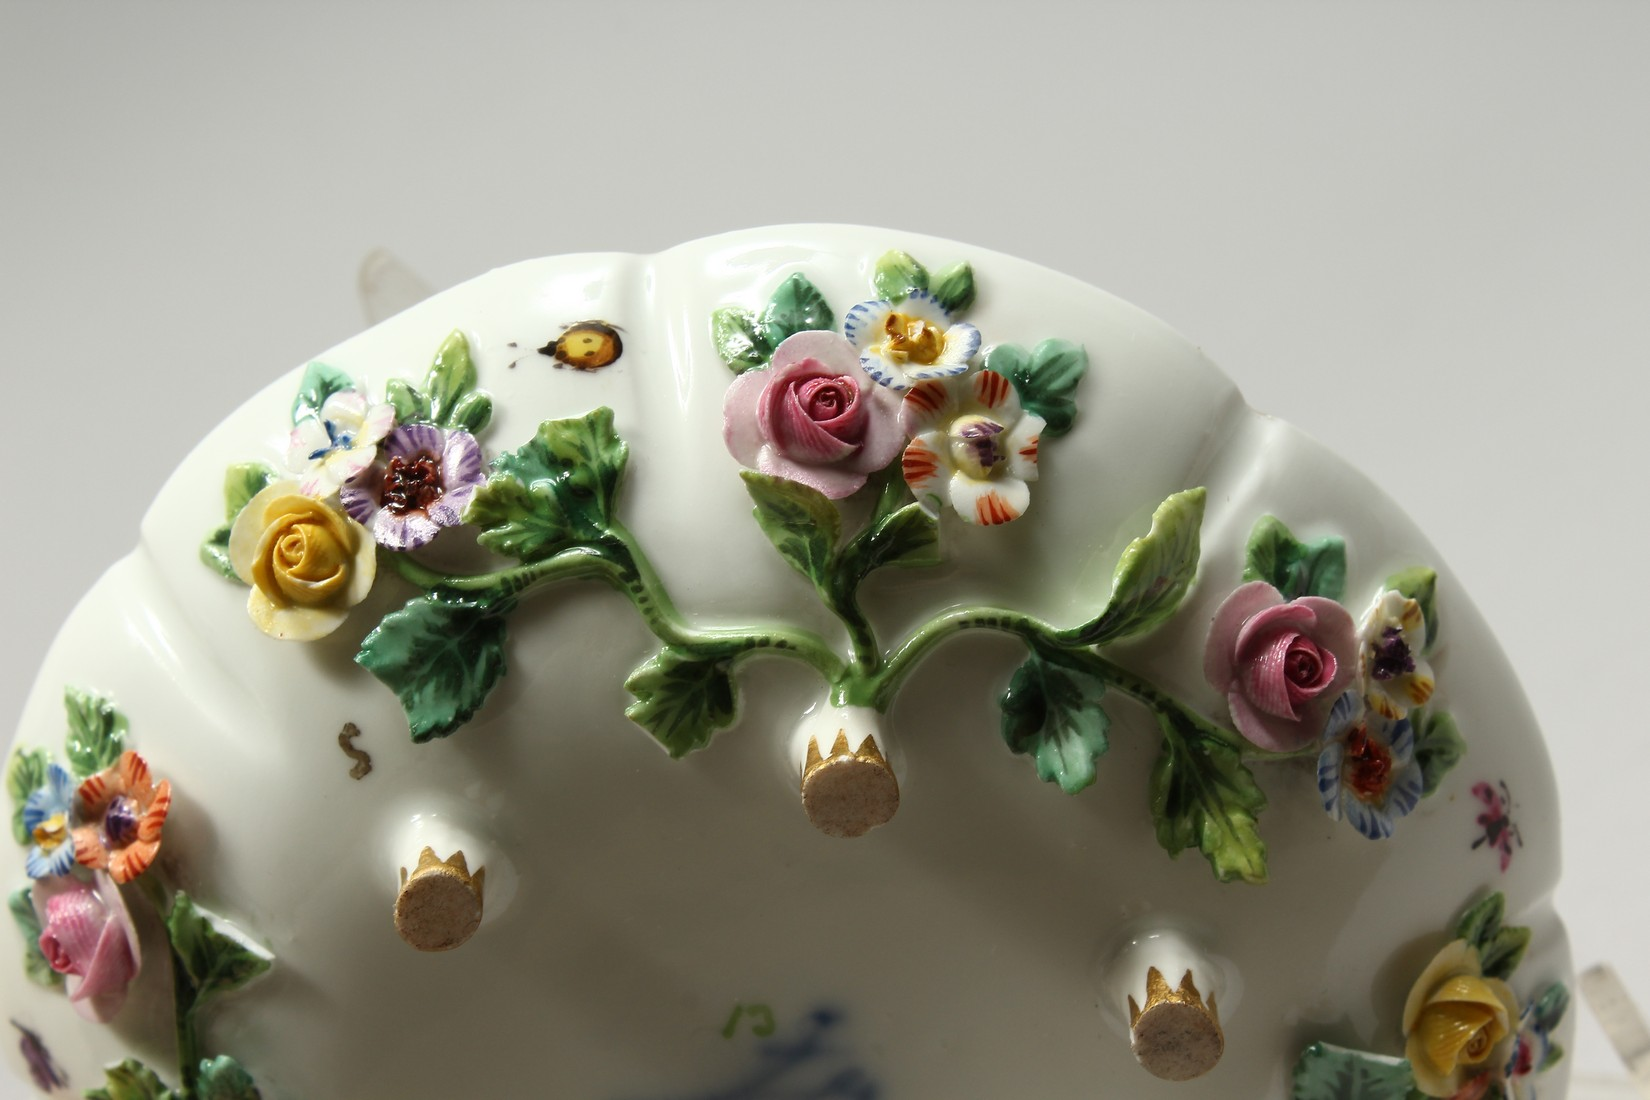 TWO MEISSEN PORCELAIN CUPS AND SAUCERS AND A SAUCER, encrusted with flowers and painted with - Image 12 of 16